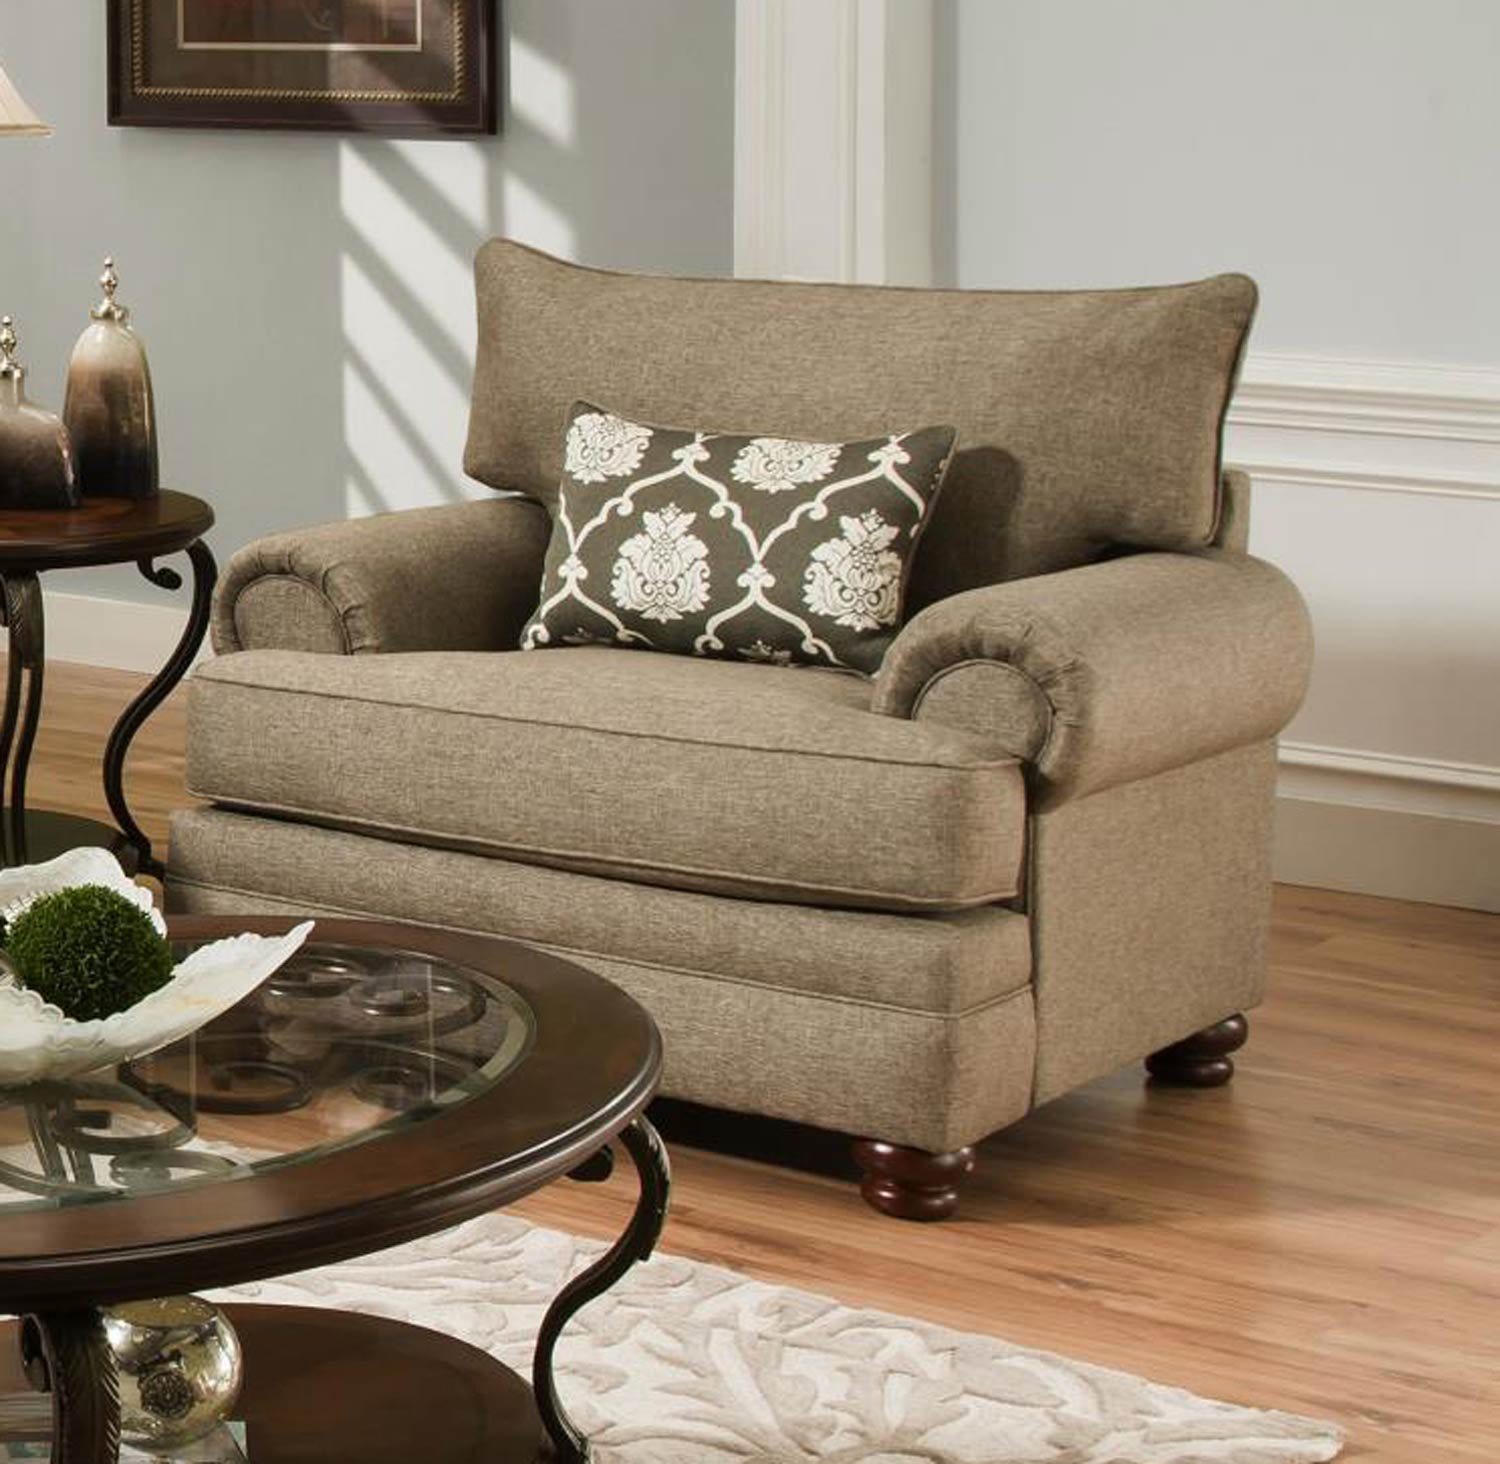 Chelsea Home Ria Accent Chair - Grande Badger